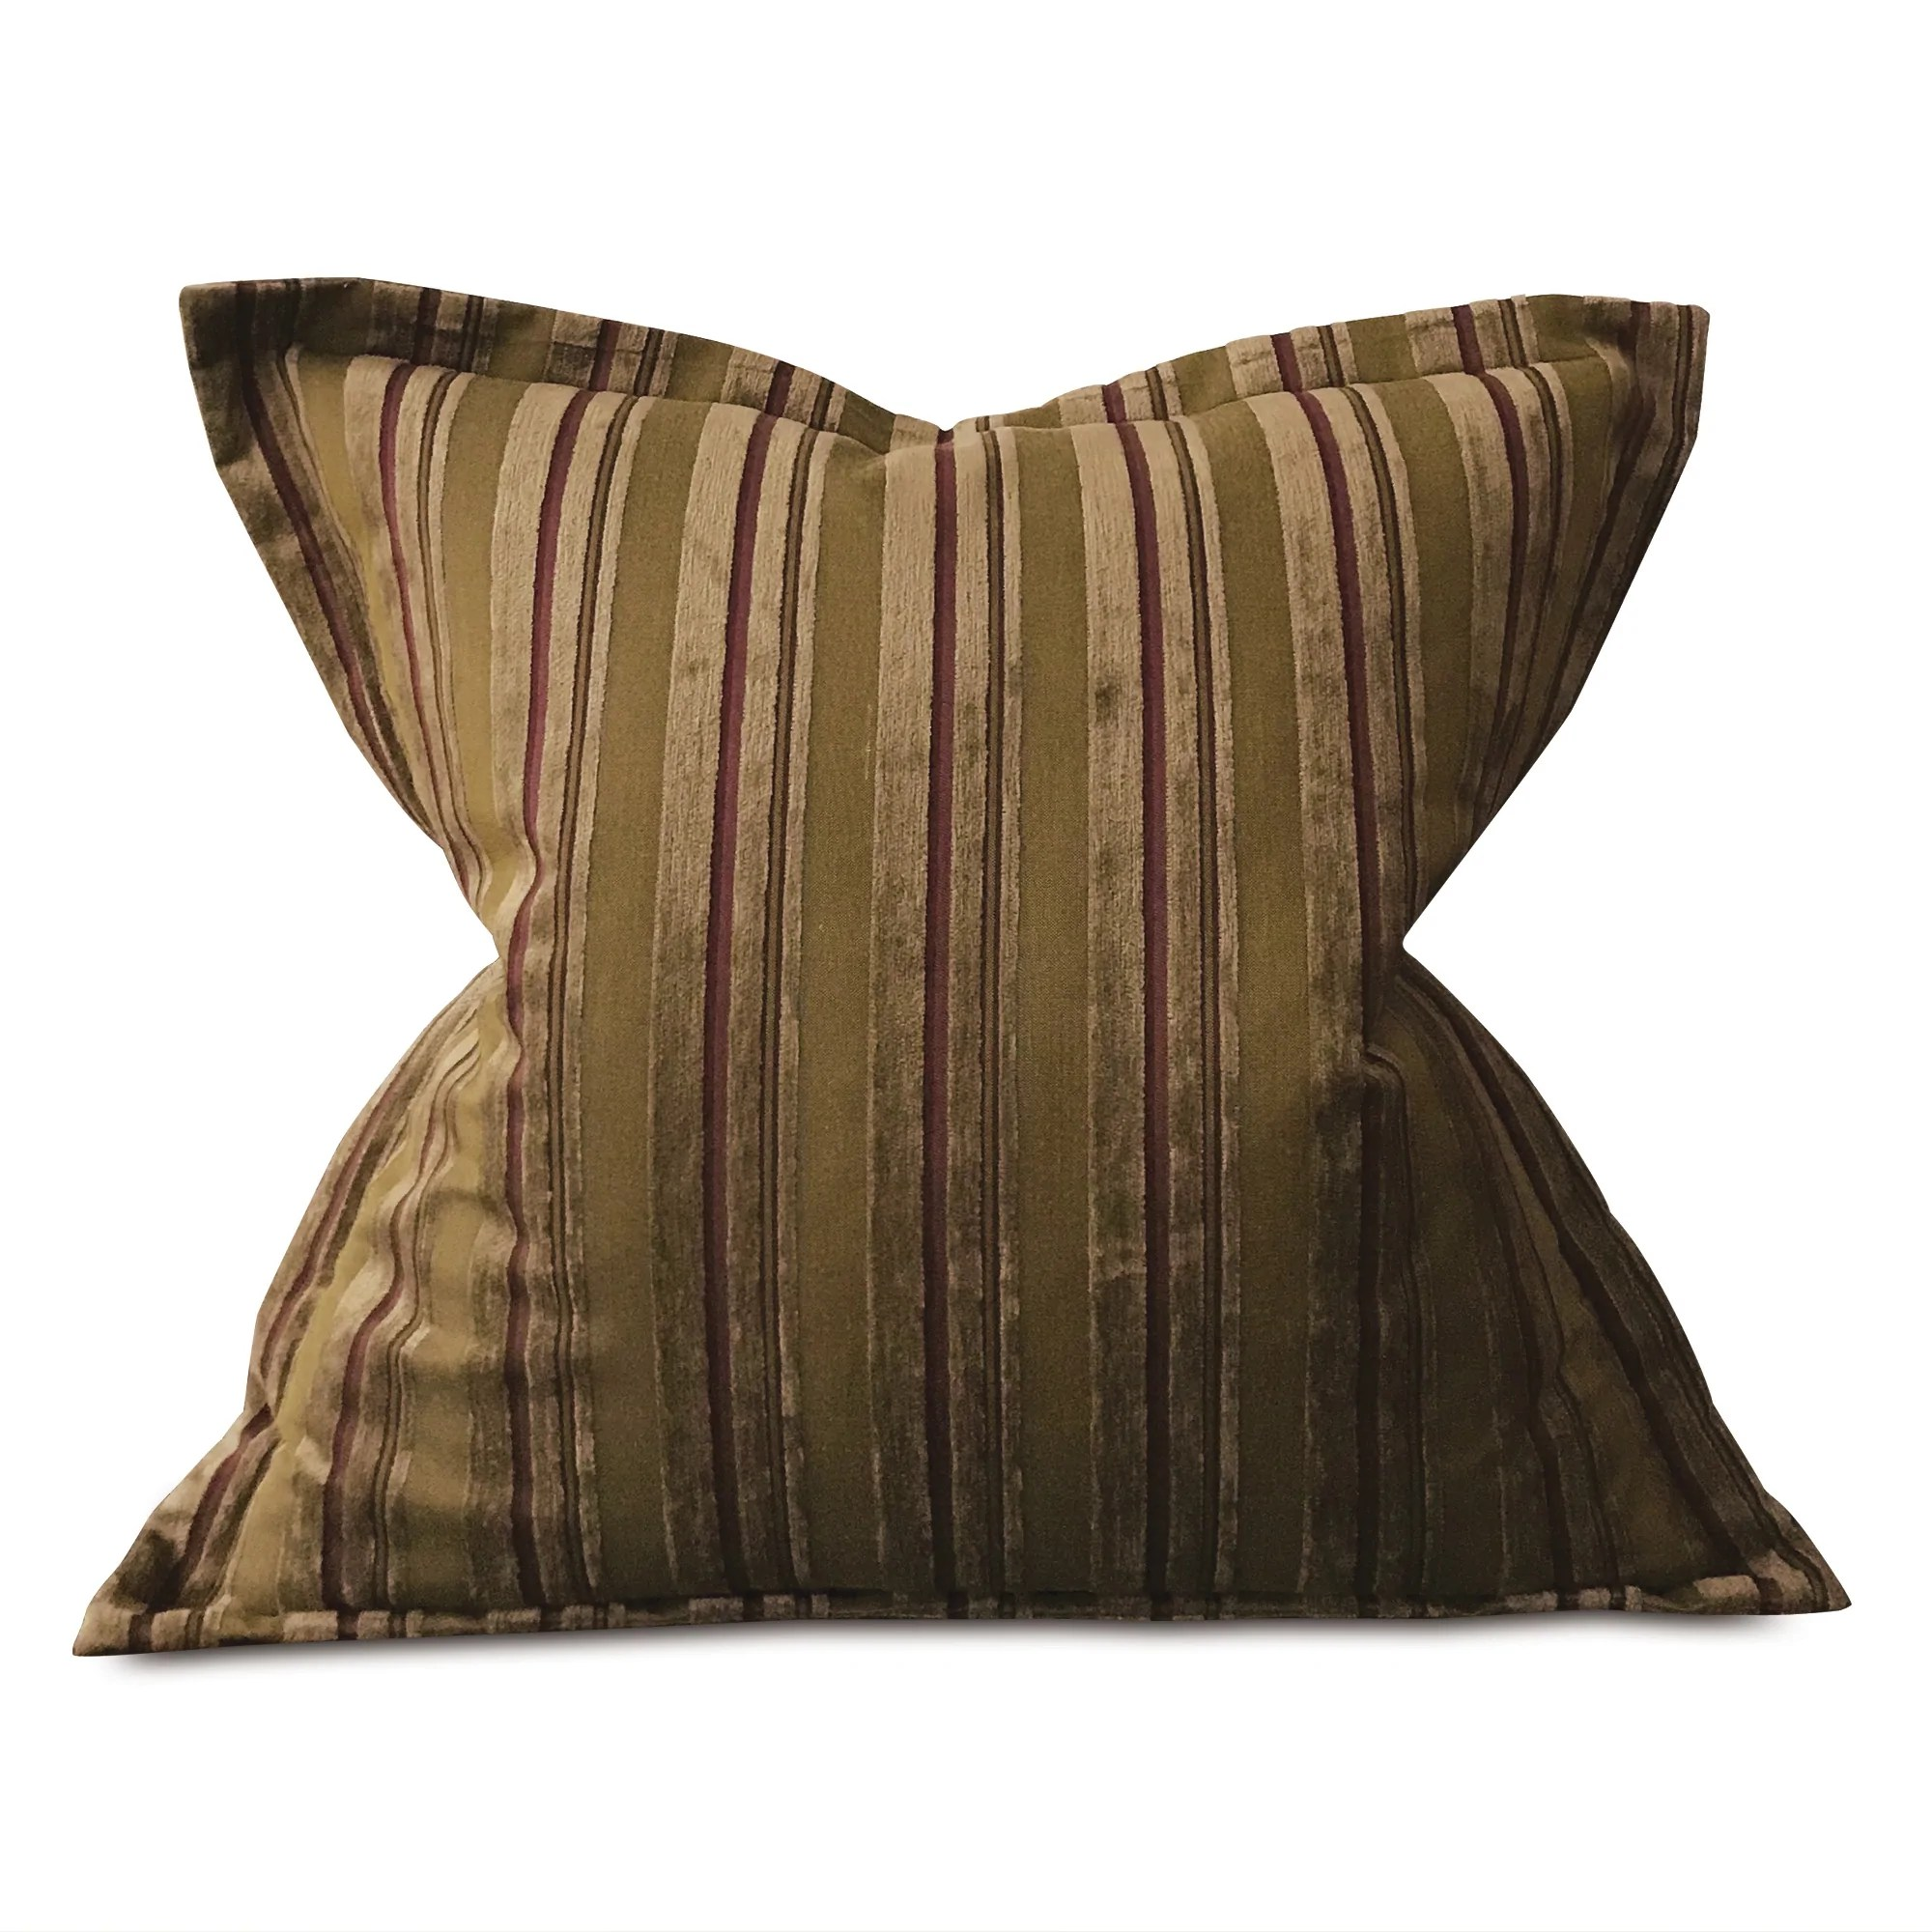 Earth Tone Velvet Textured Woven Striped Oversized Decorative Pillow C Plankroad Home Outlet